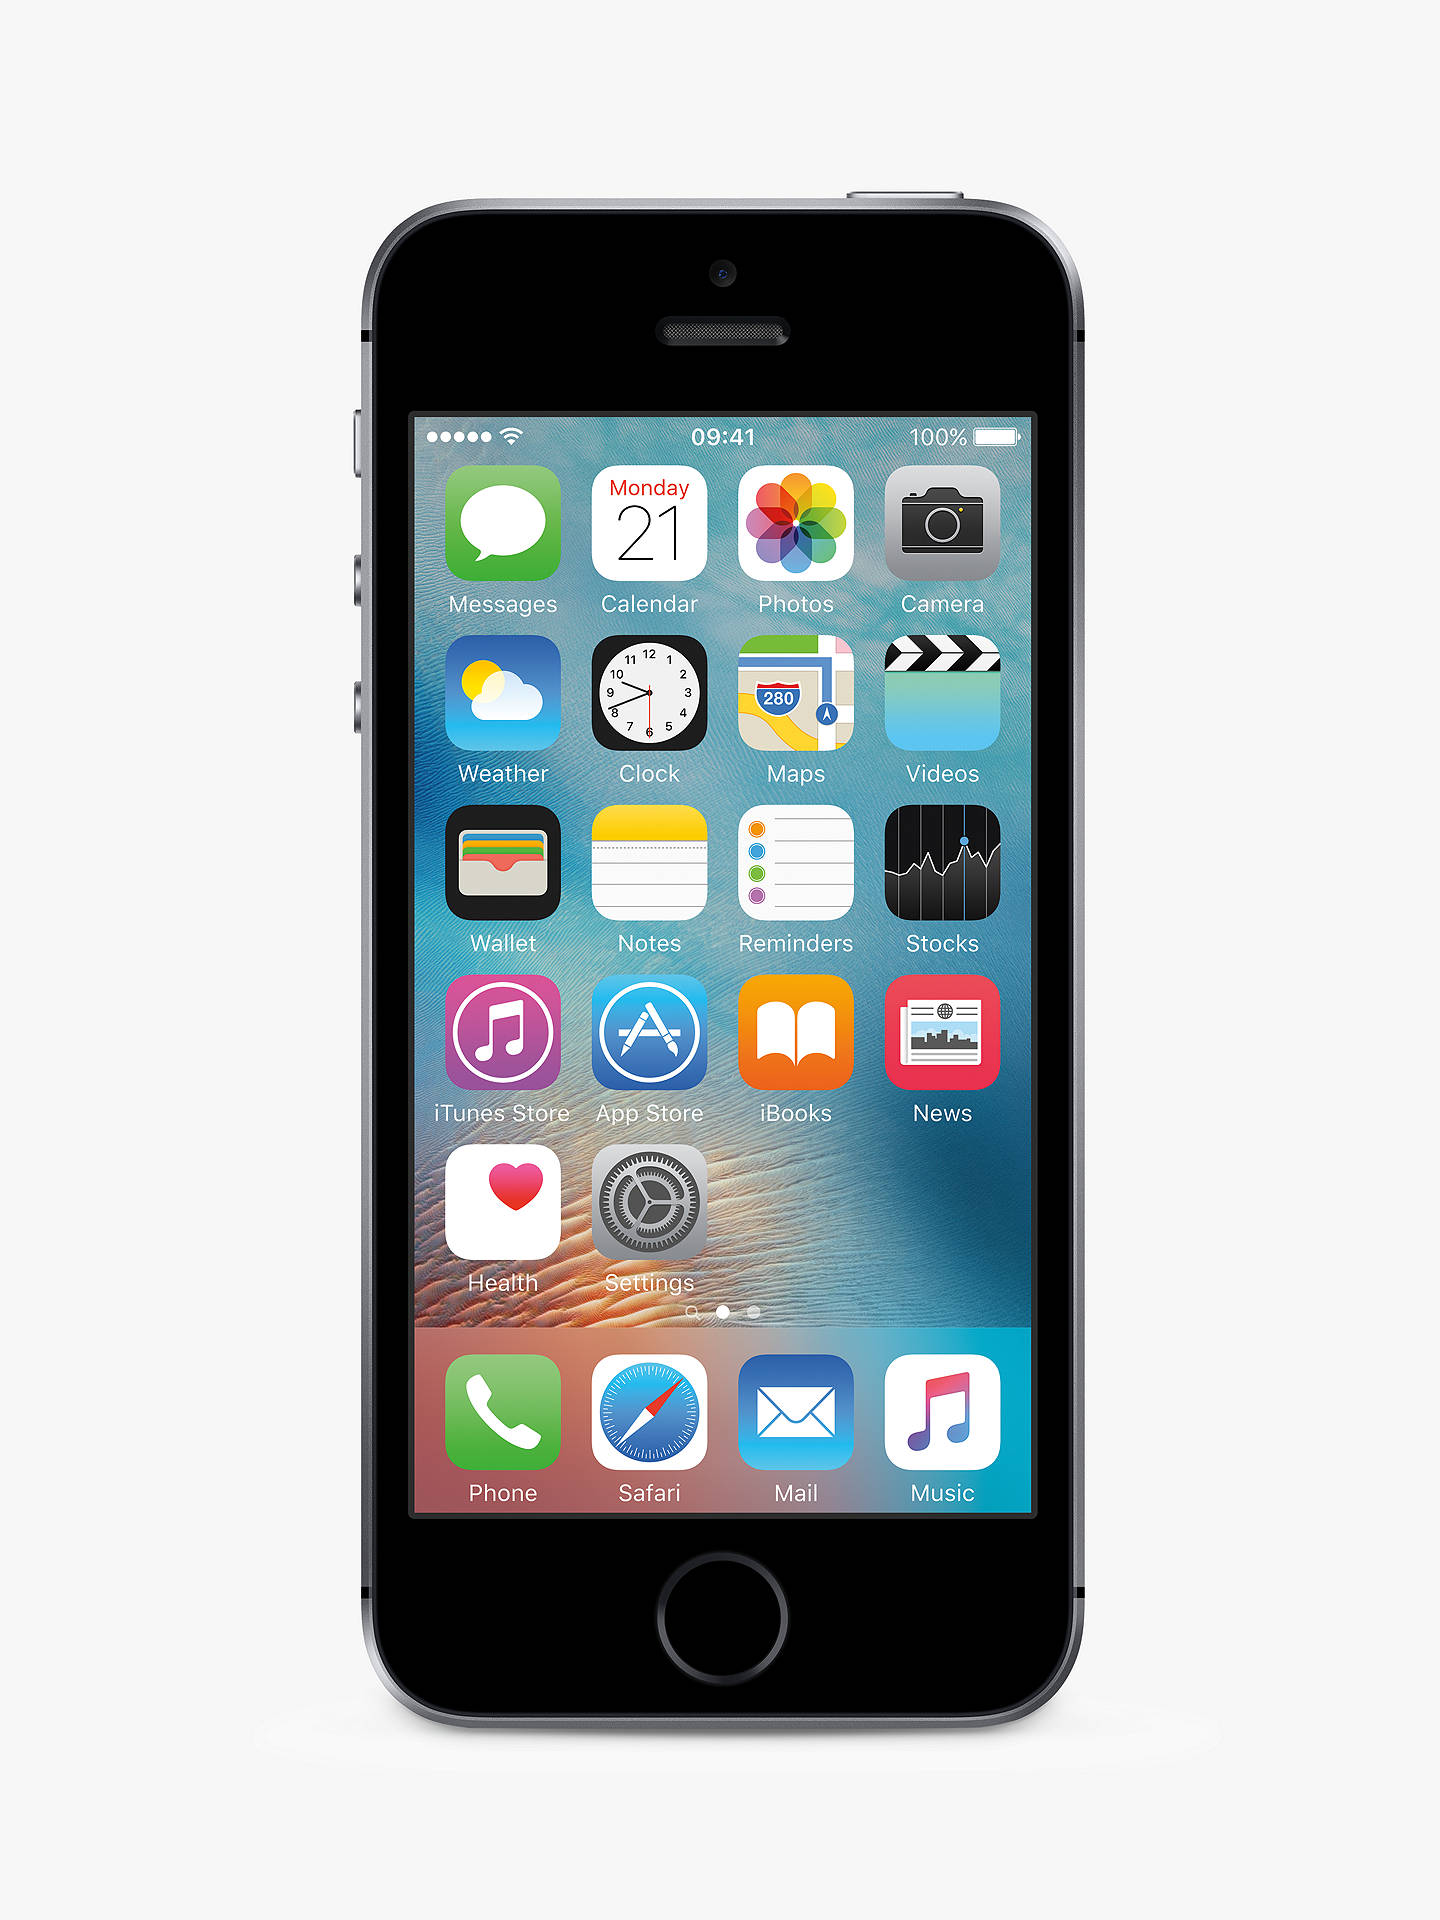 Le Iphone Se Ios 10 4 4g Lte Sim Free